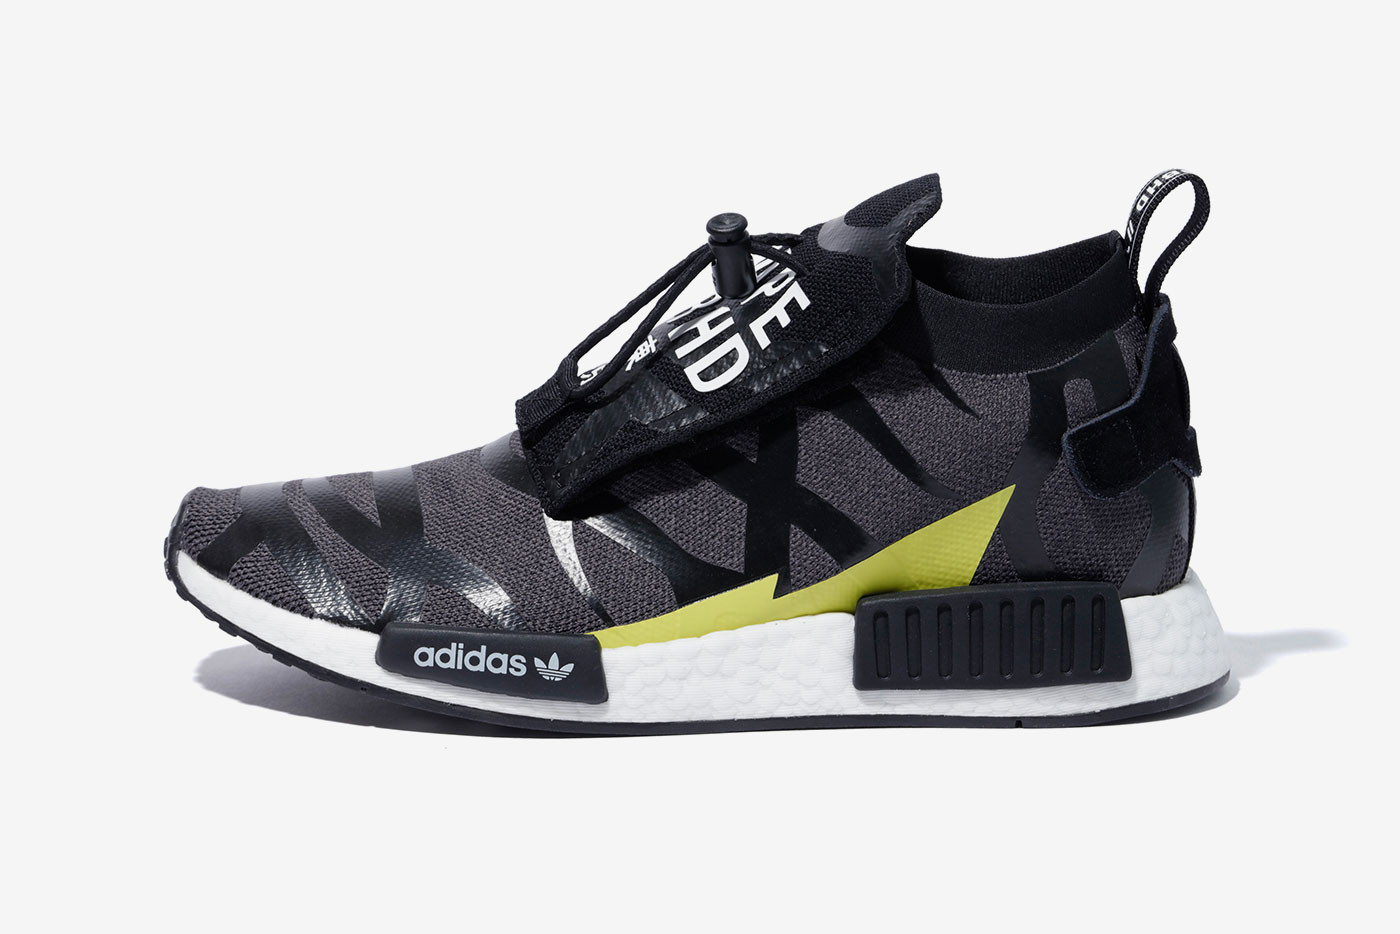 pretty nice 14d1a 521be BAPE x NEIGHBORHOOD x adidas Originals Release nmd pod shark face motif  black white 1st camo